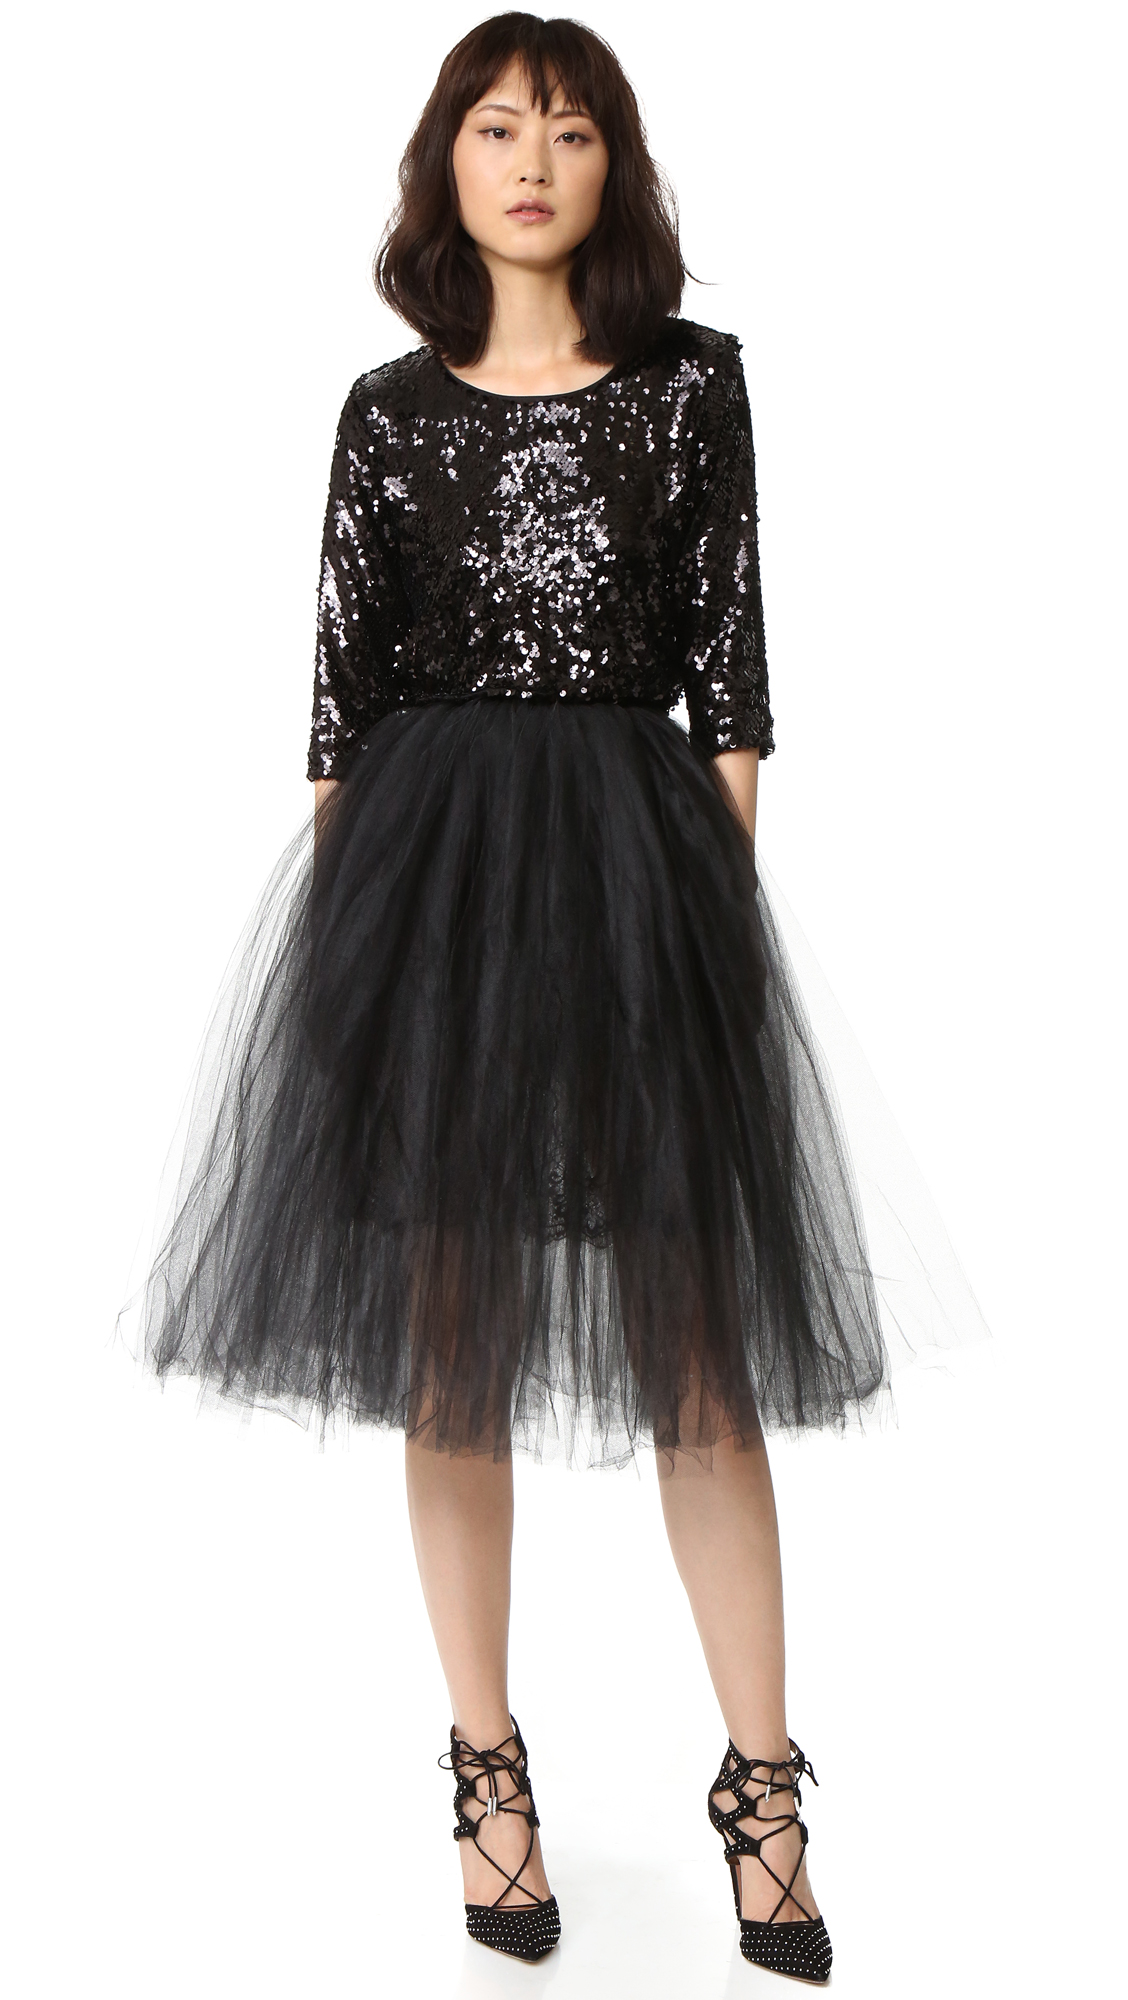 Loyd/Ford Sequin Dress With Tulle - Black